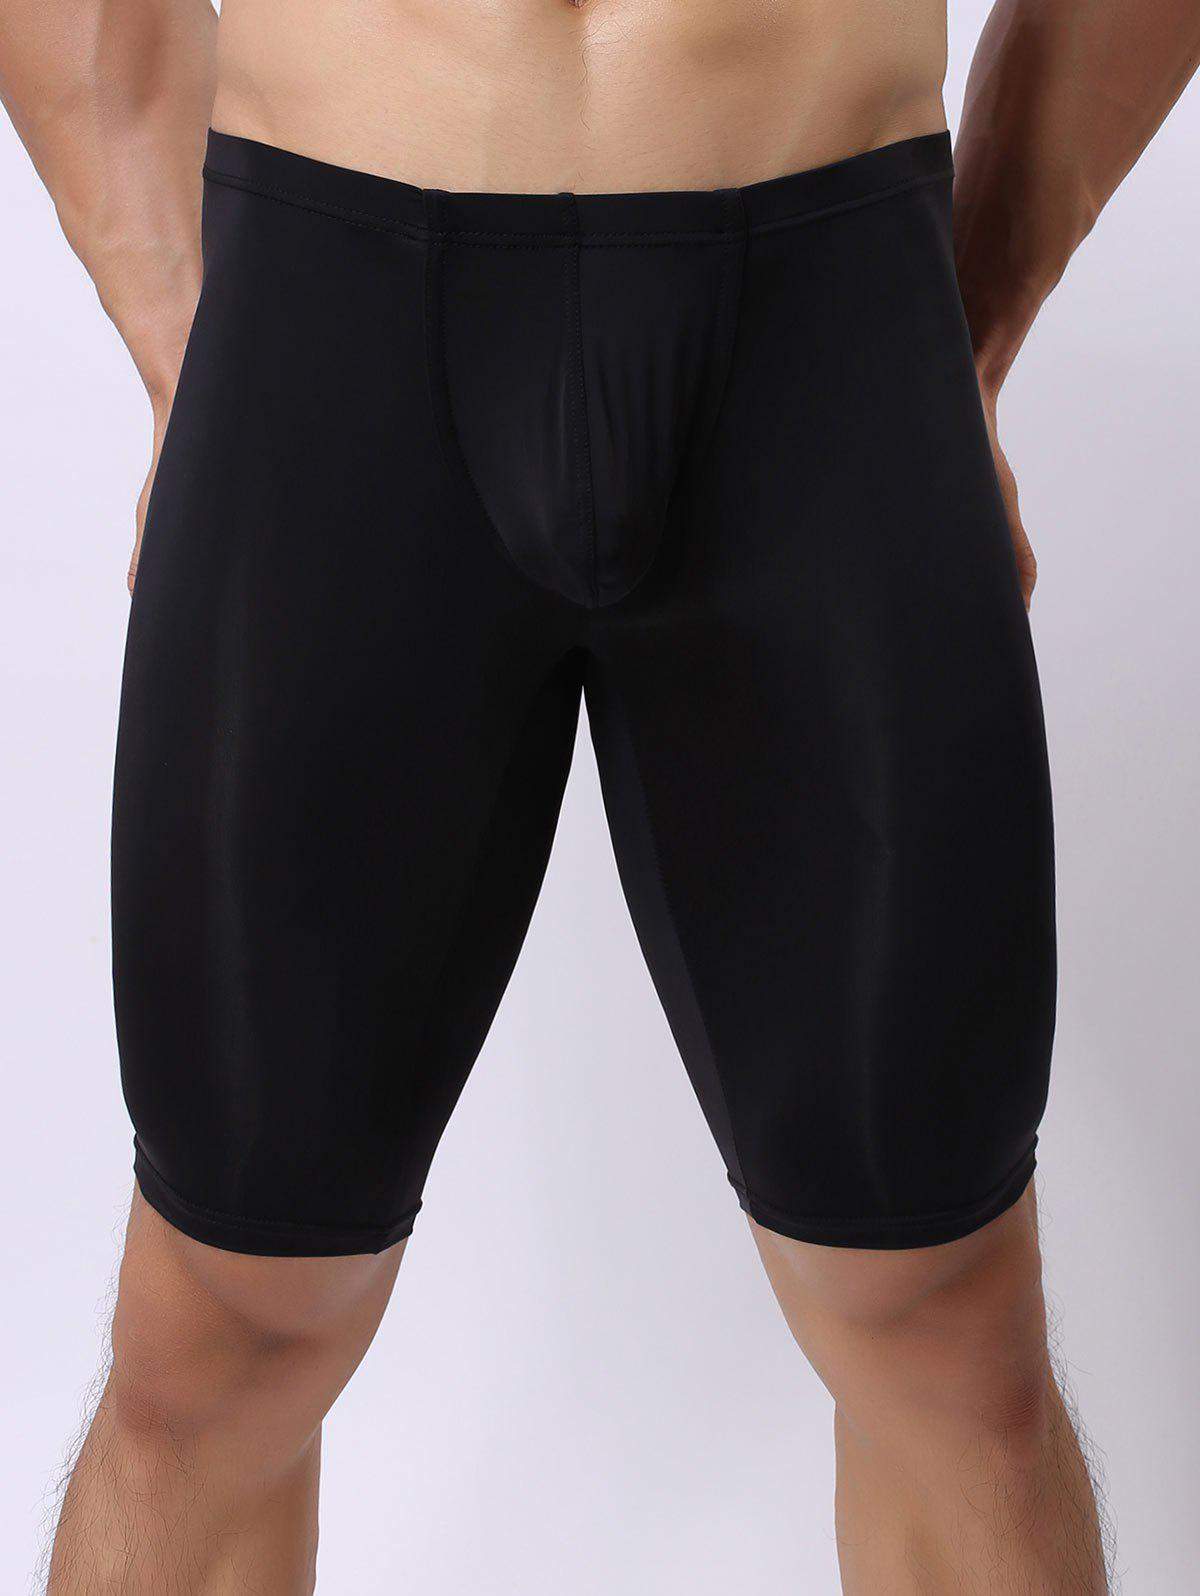 High Stretch U Convex Pouch Boxers - BLACK S